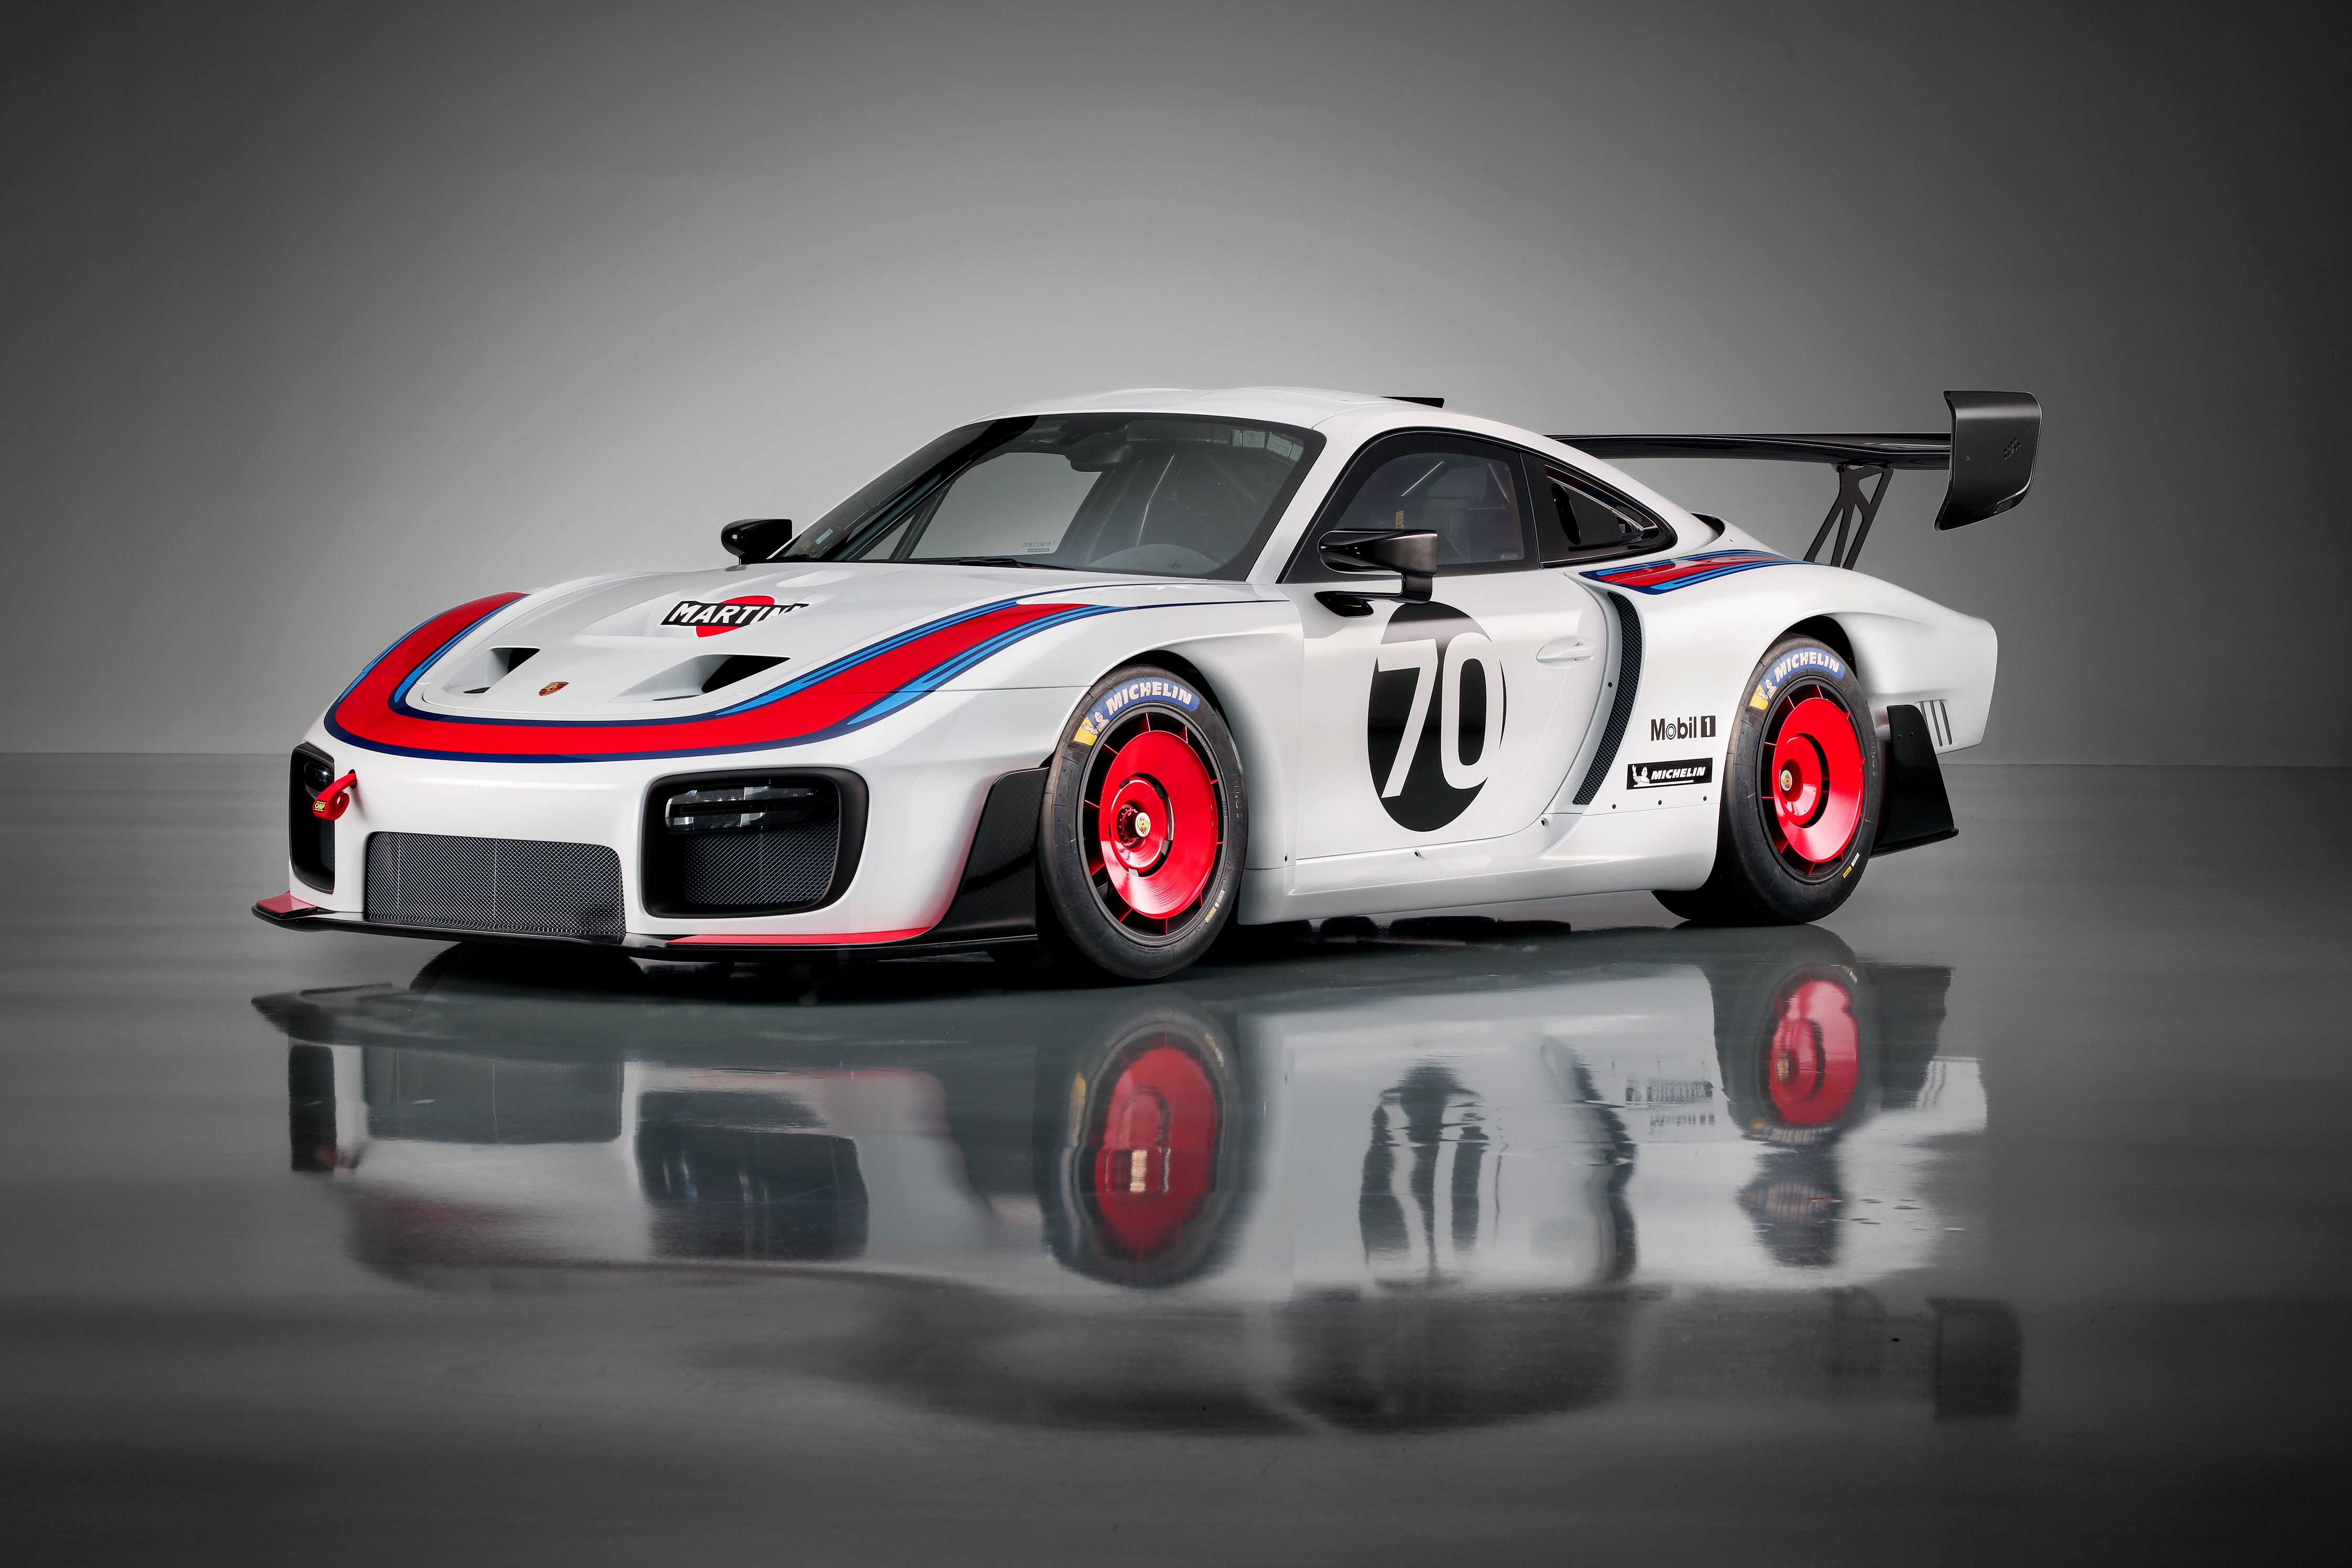 Porsche Debuts New 935 Race Car Inspired By Moby Dick Based On